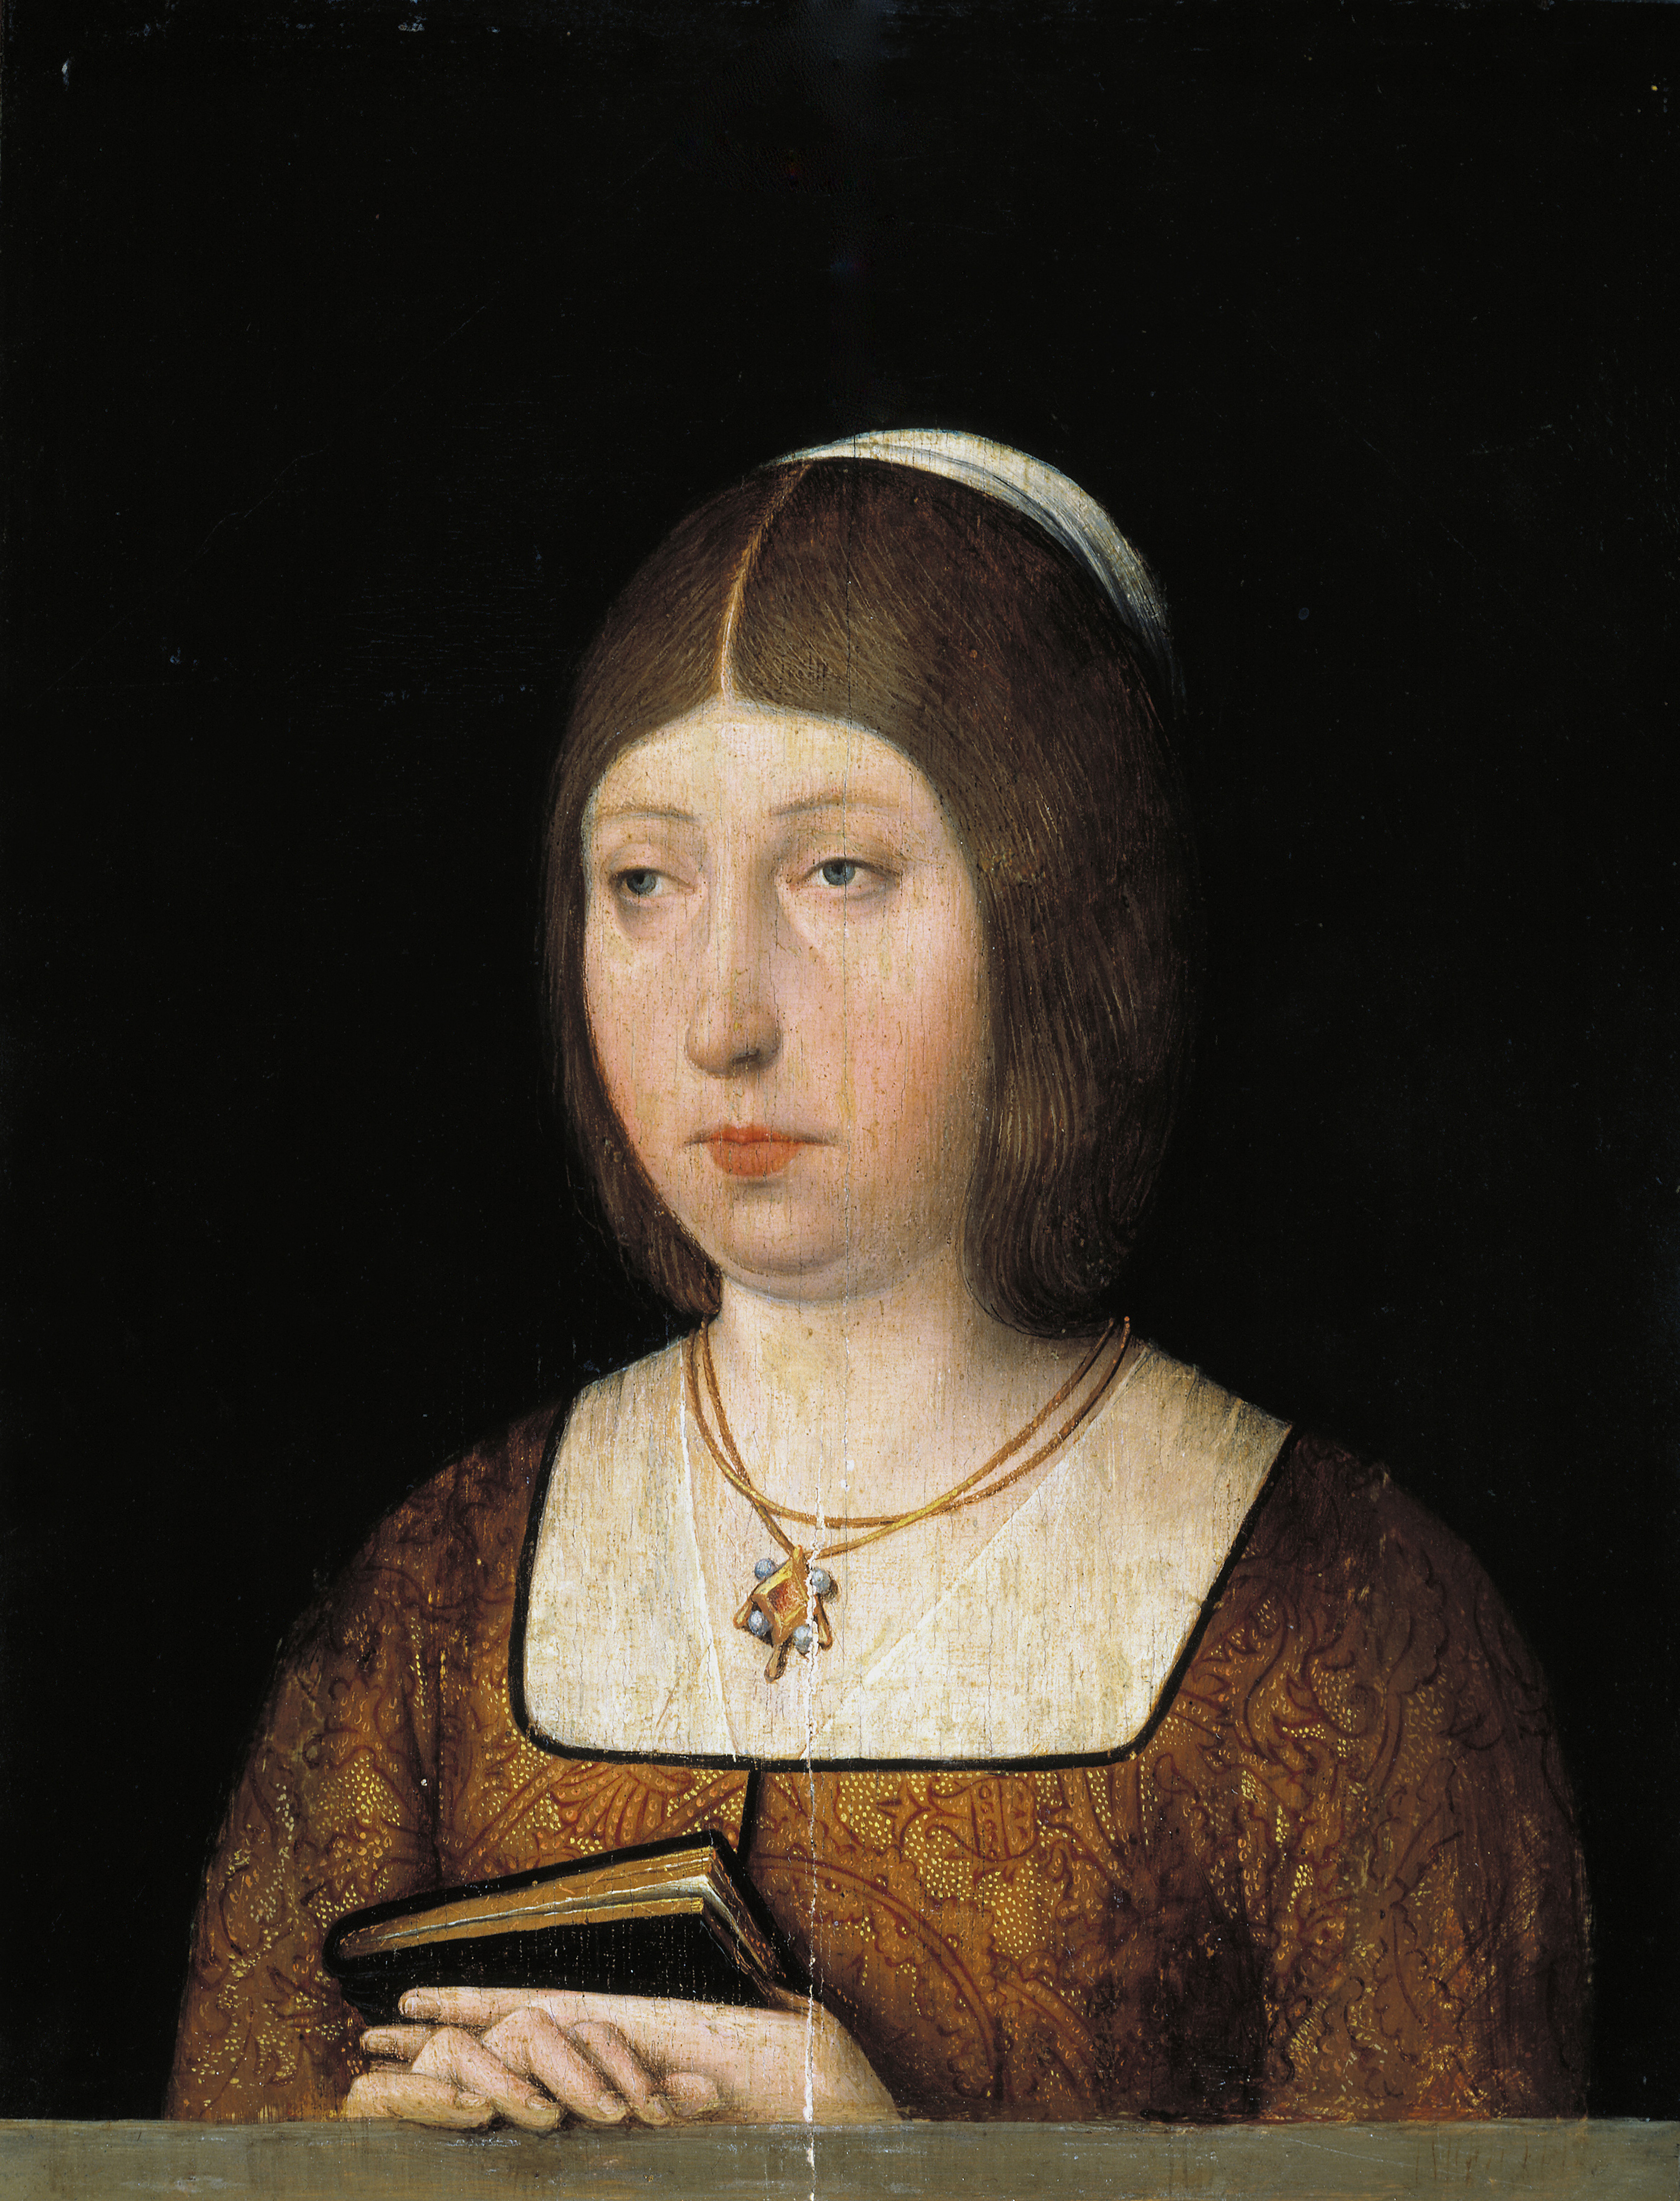 Portrait of Isabel la Católica, by anonymous author, which is in the Prado Museum.  The painting was made around 1490, when he already had Sancho Paredes de Guzmán at his service.